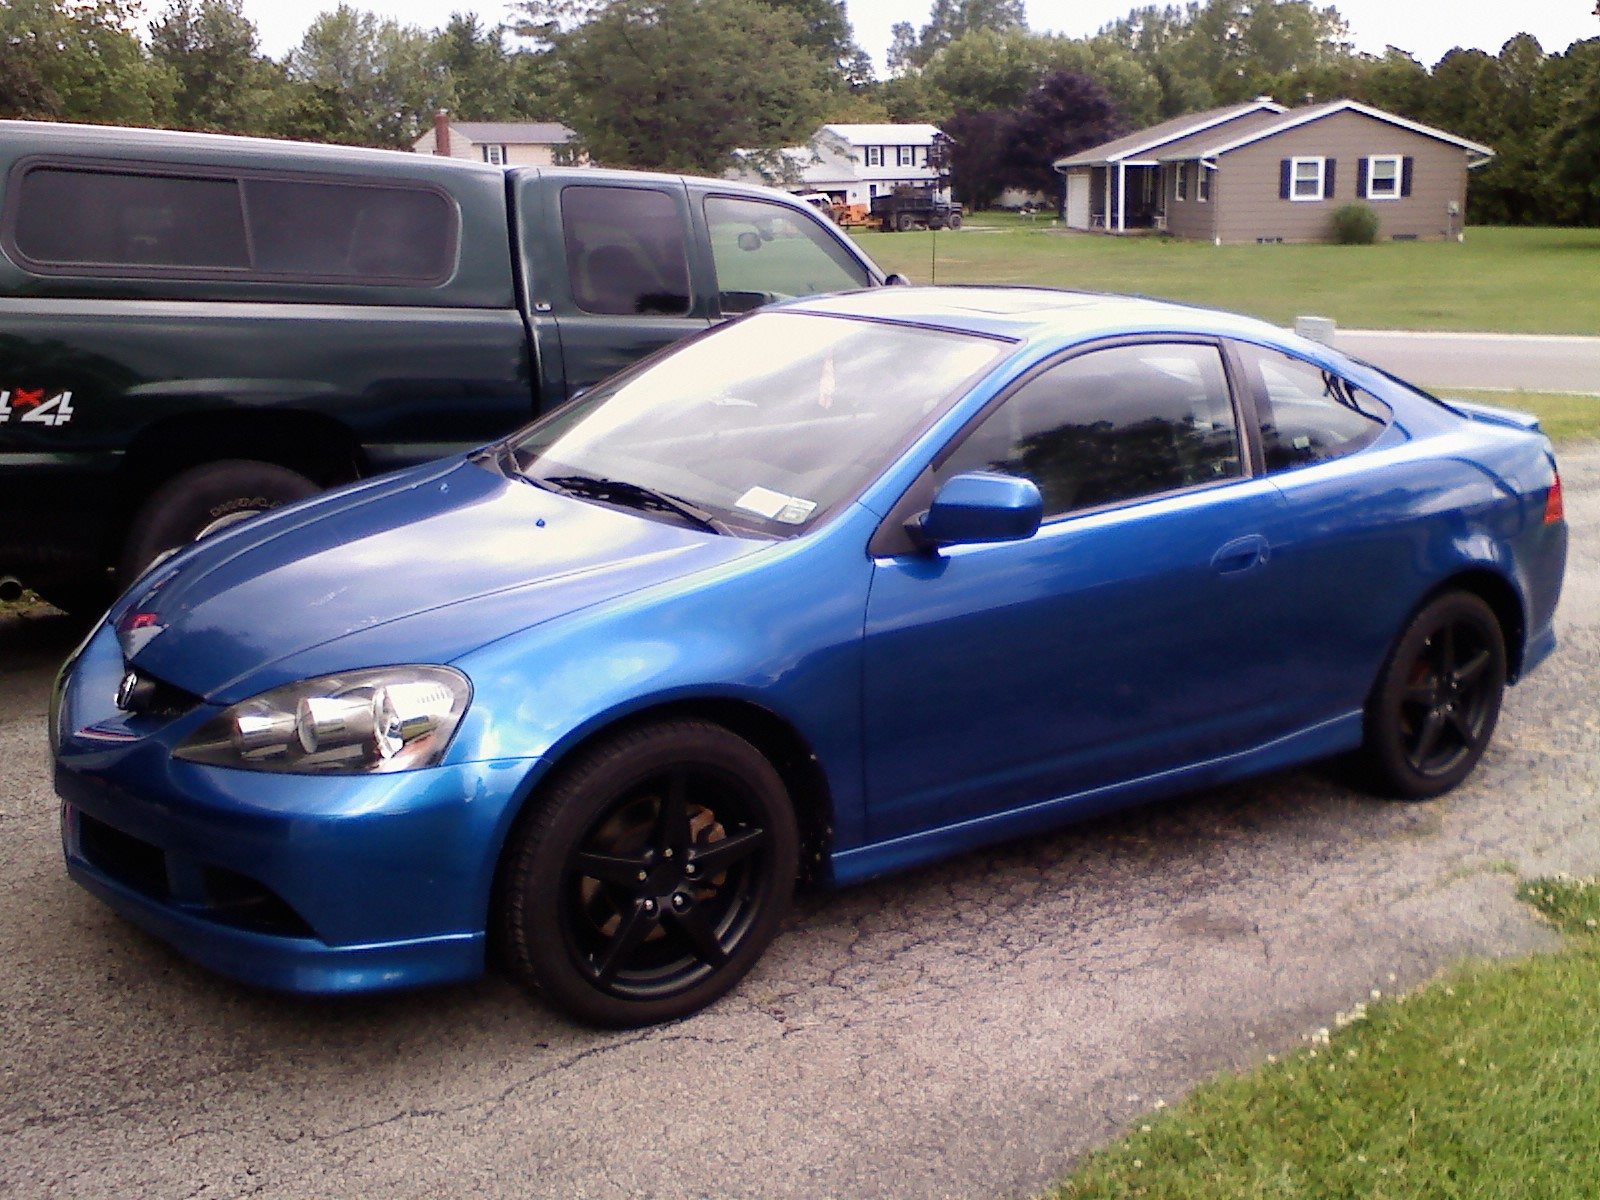 Acura Rsx Modified - Viewing Gallery